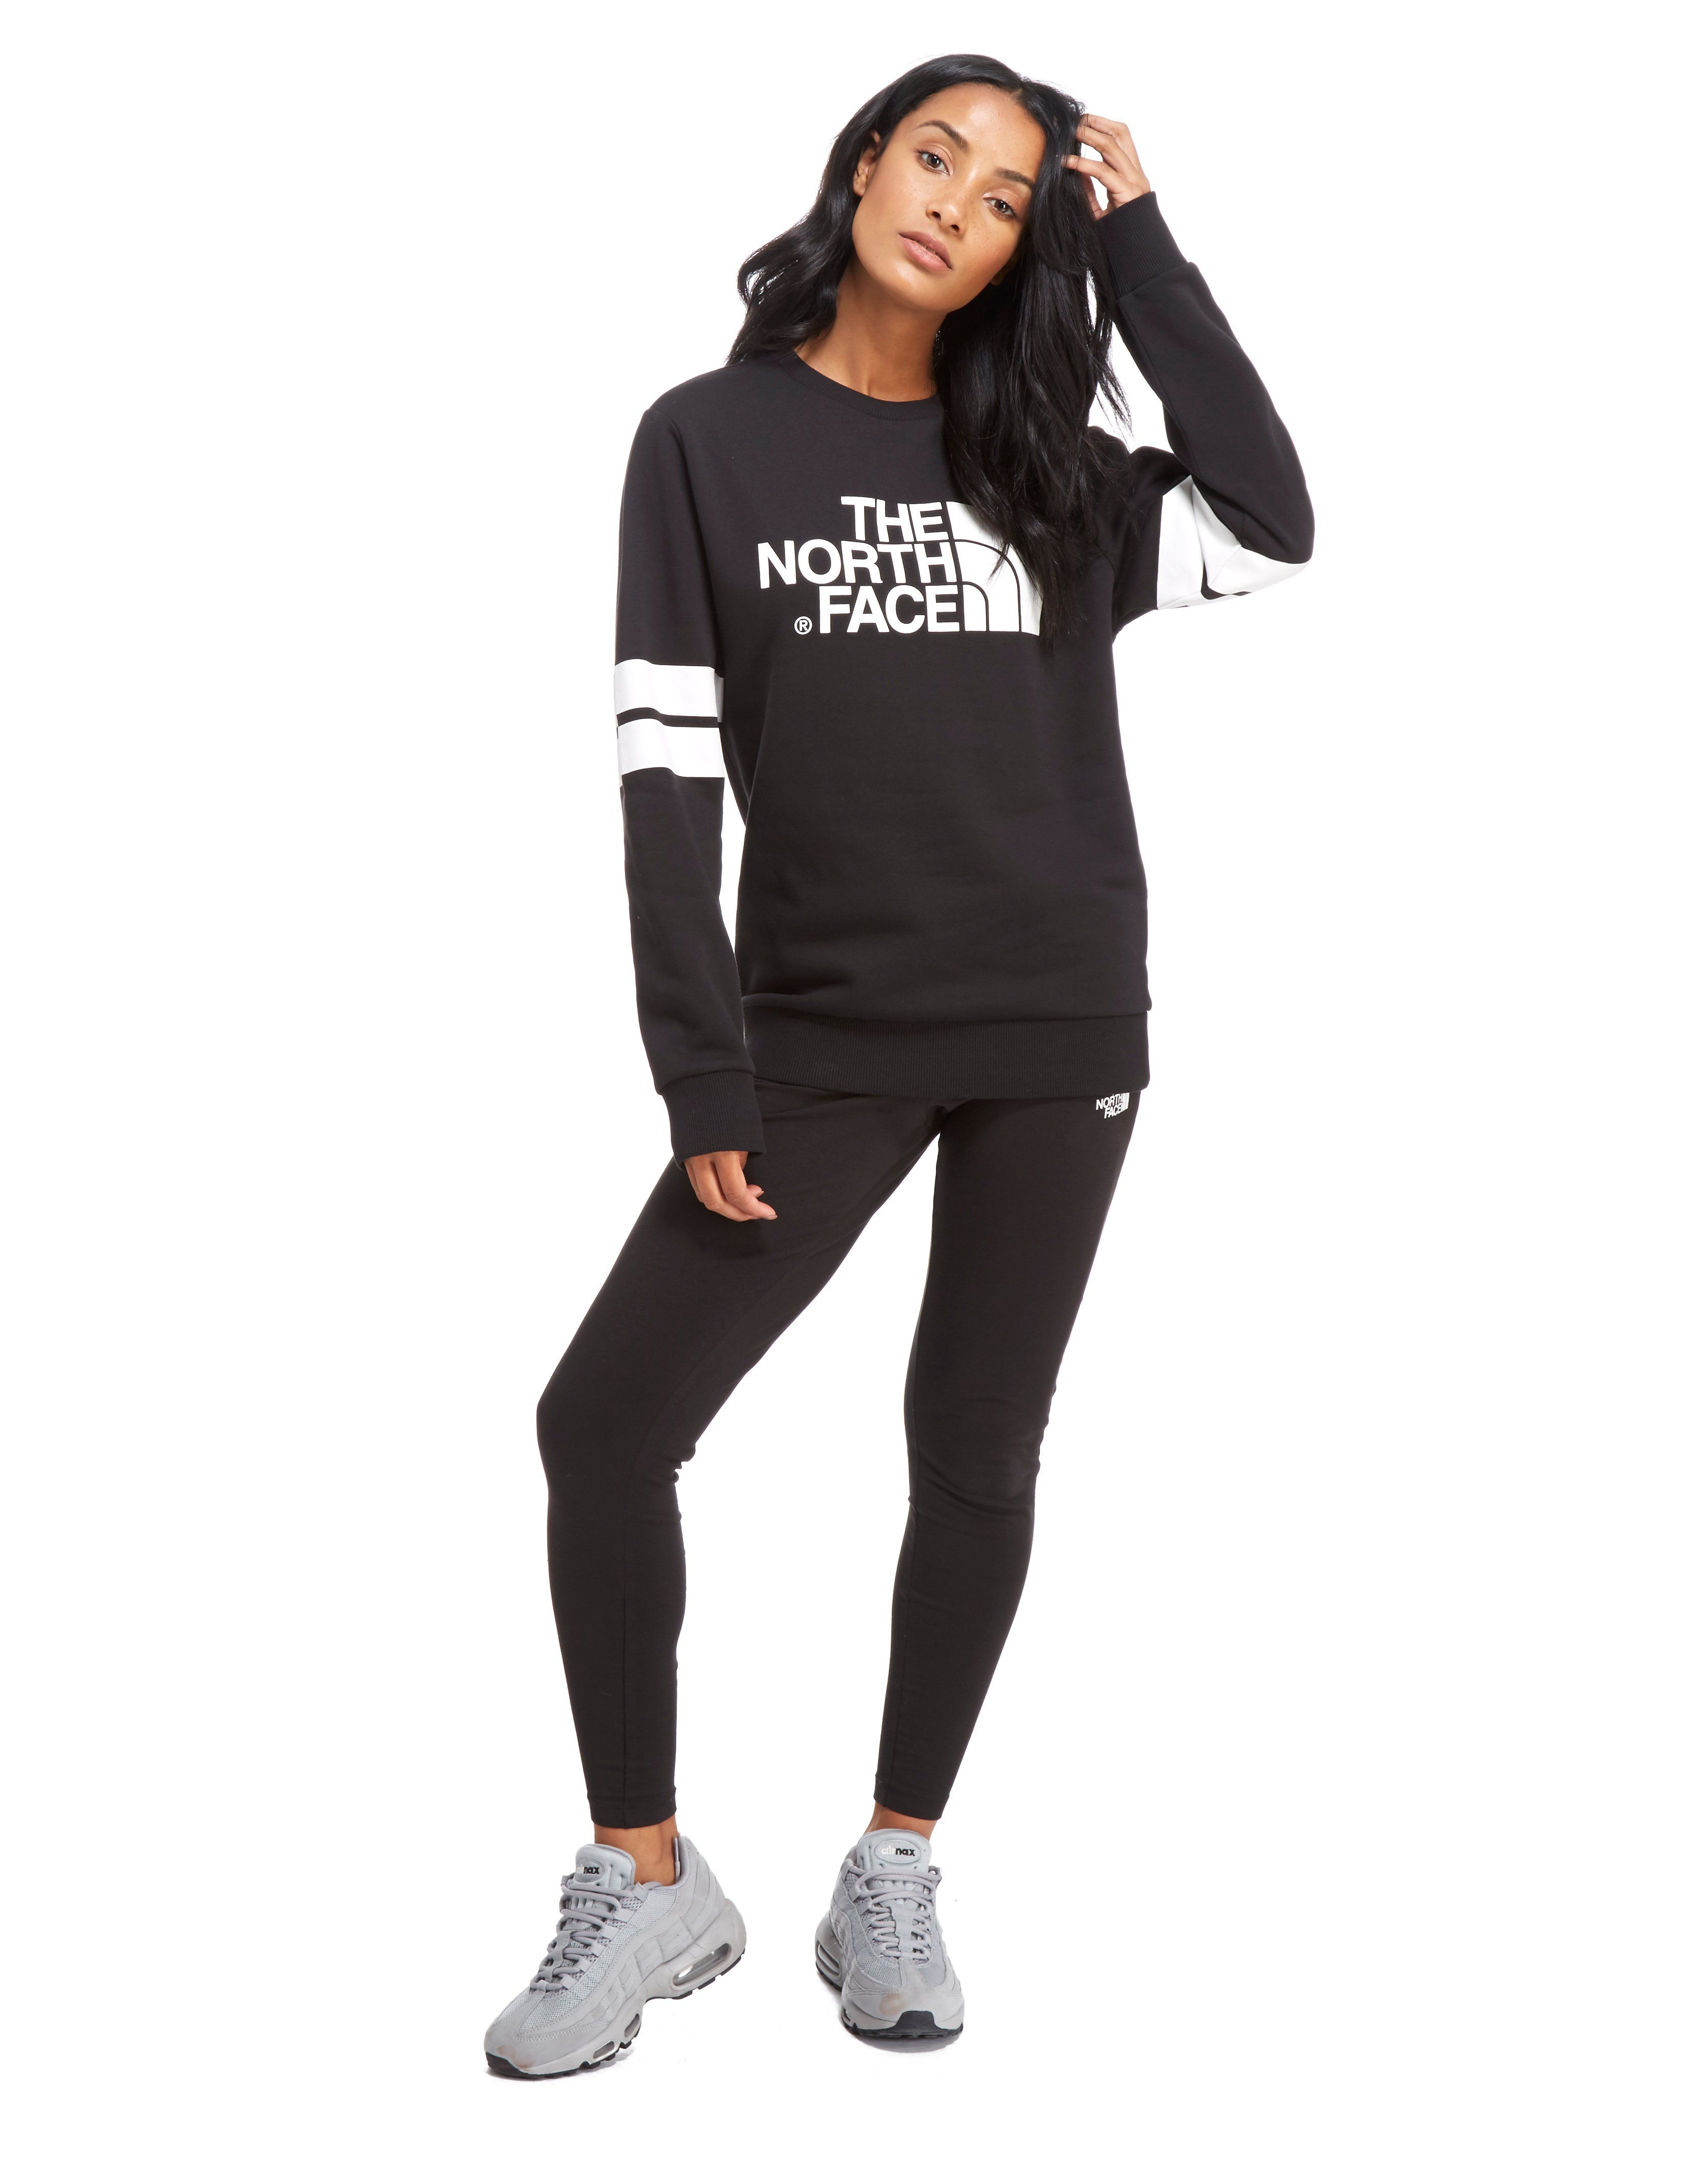 The North Face Stripe Sleeve Crew Sweatshirt